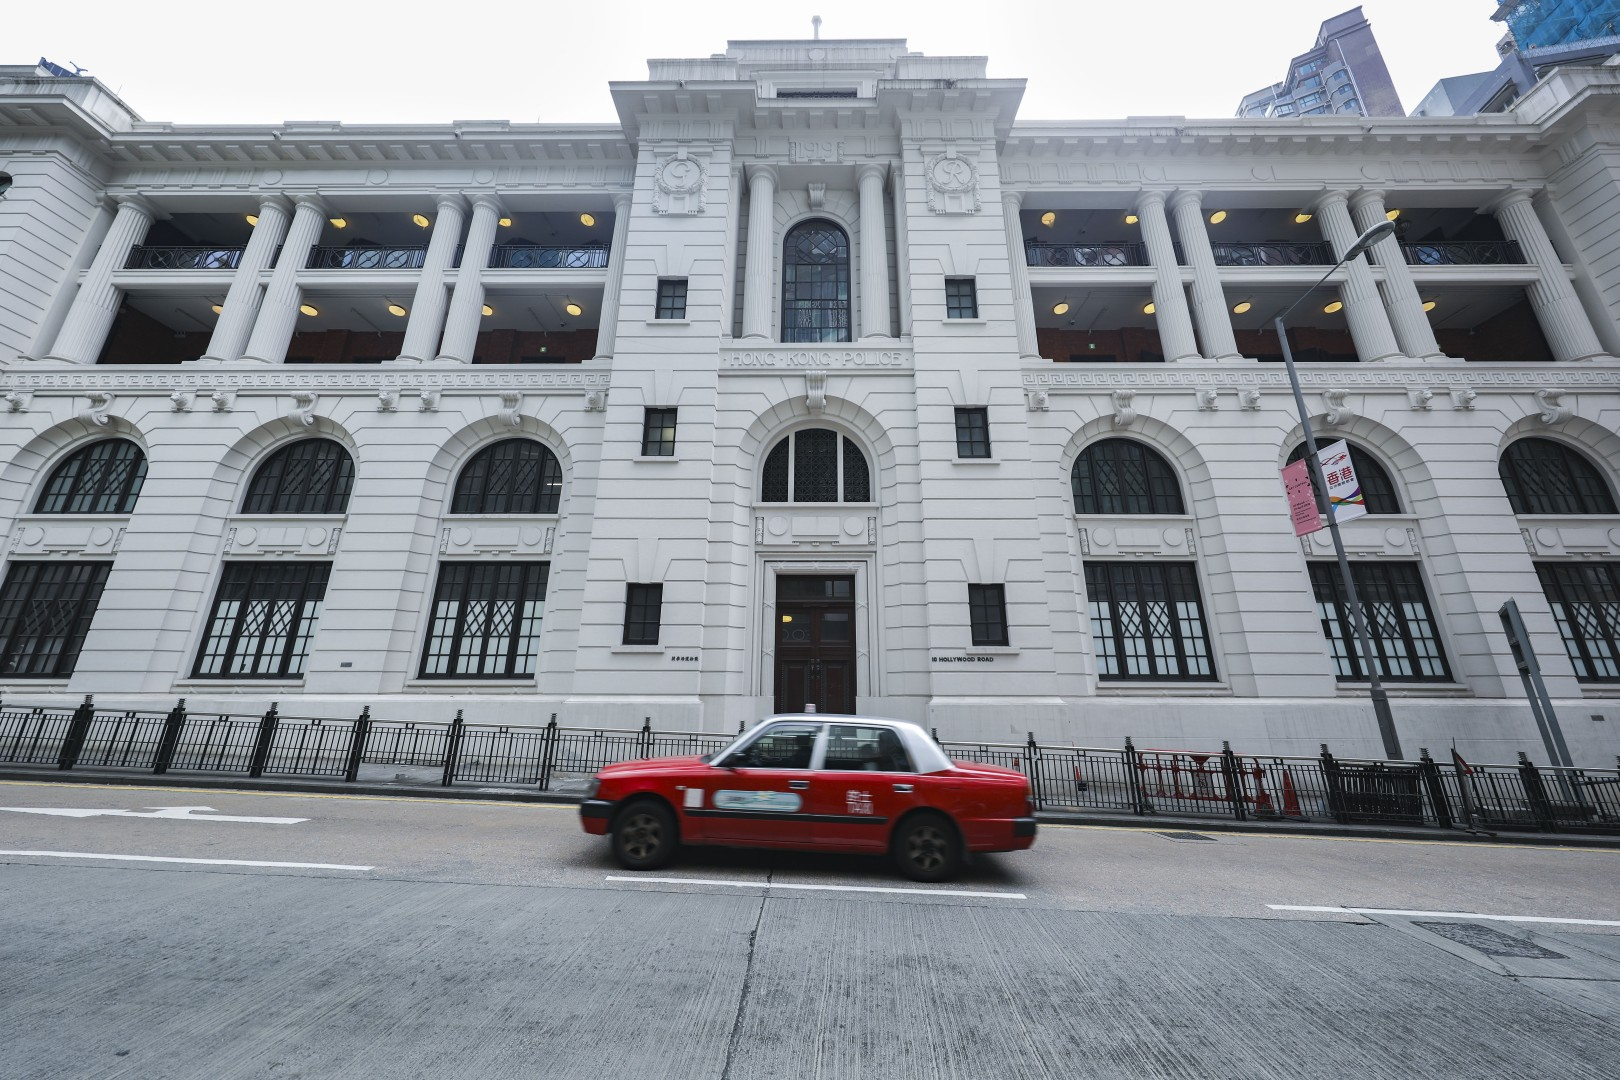 58619e93a79 Why the secrecy surrounding first art show at historic Hong Kong police  station?